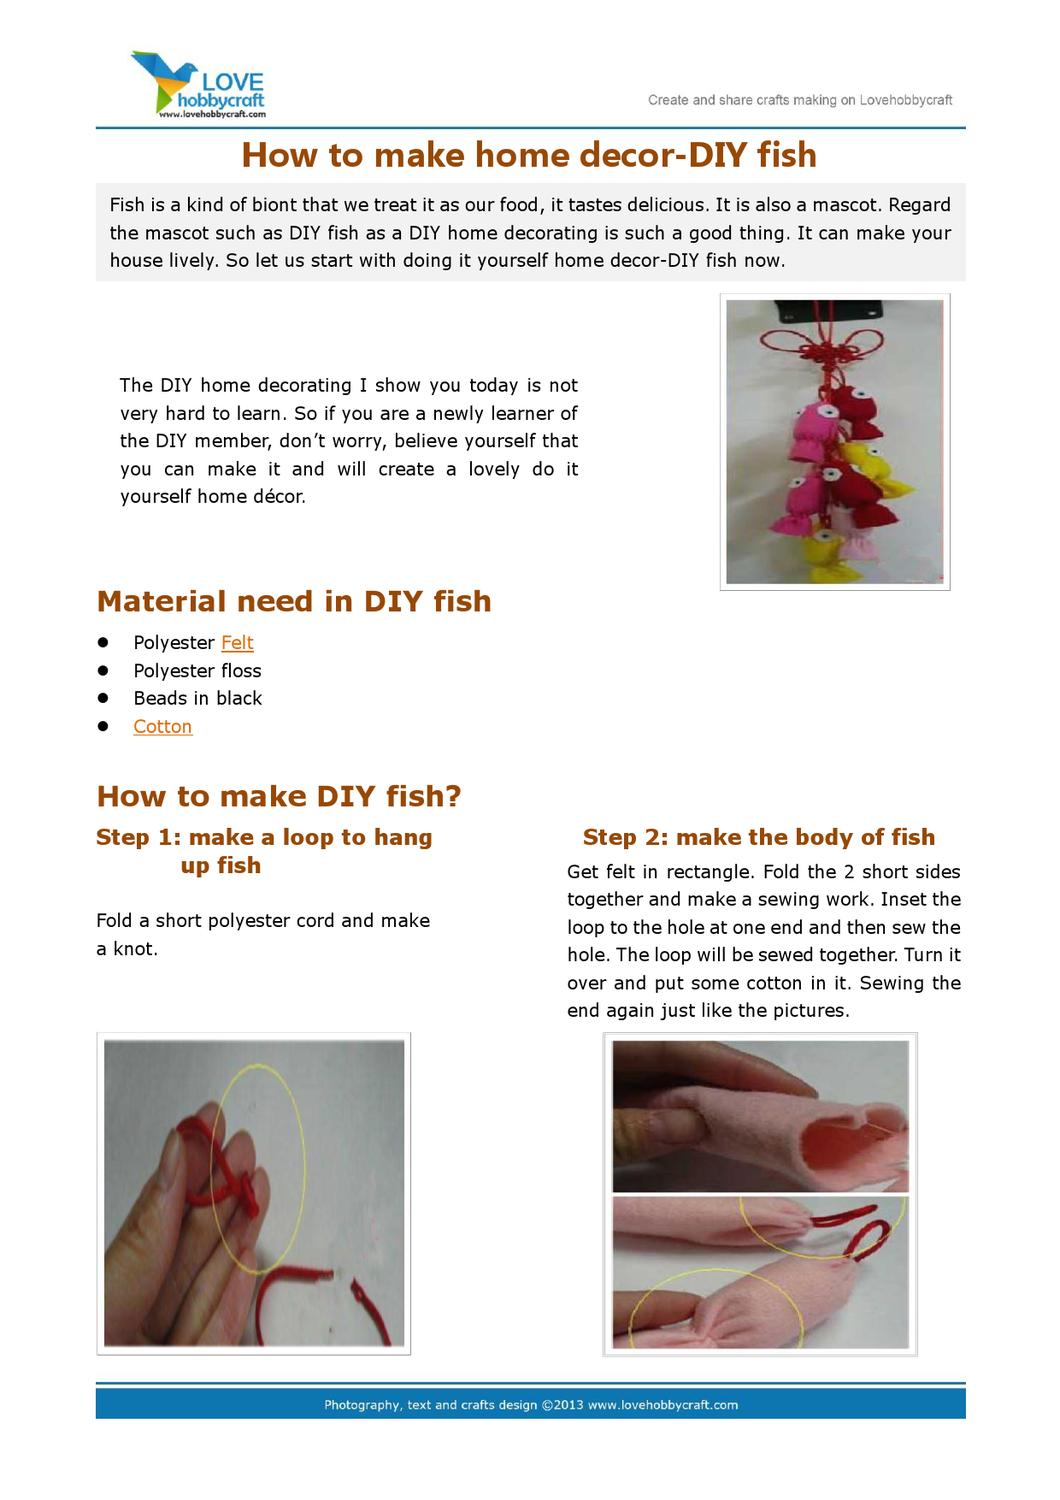 How To Make Home Decor Diy Fish By Green Ada   Issuu